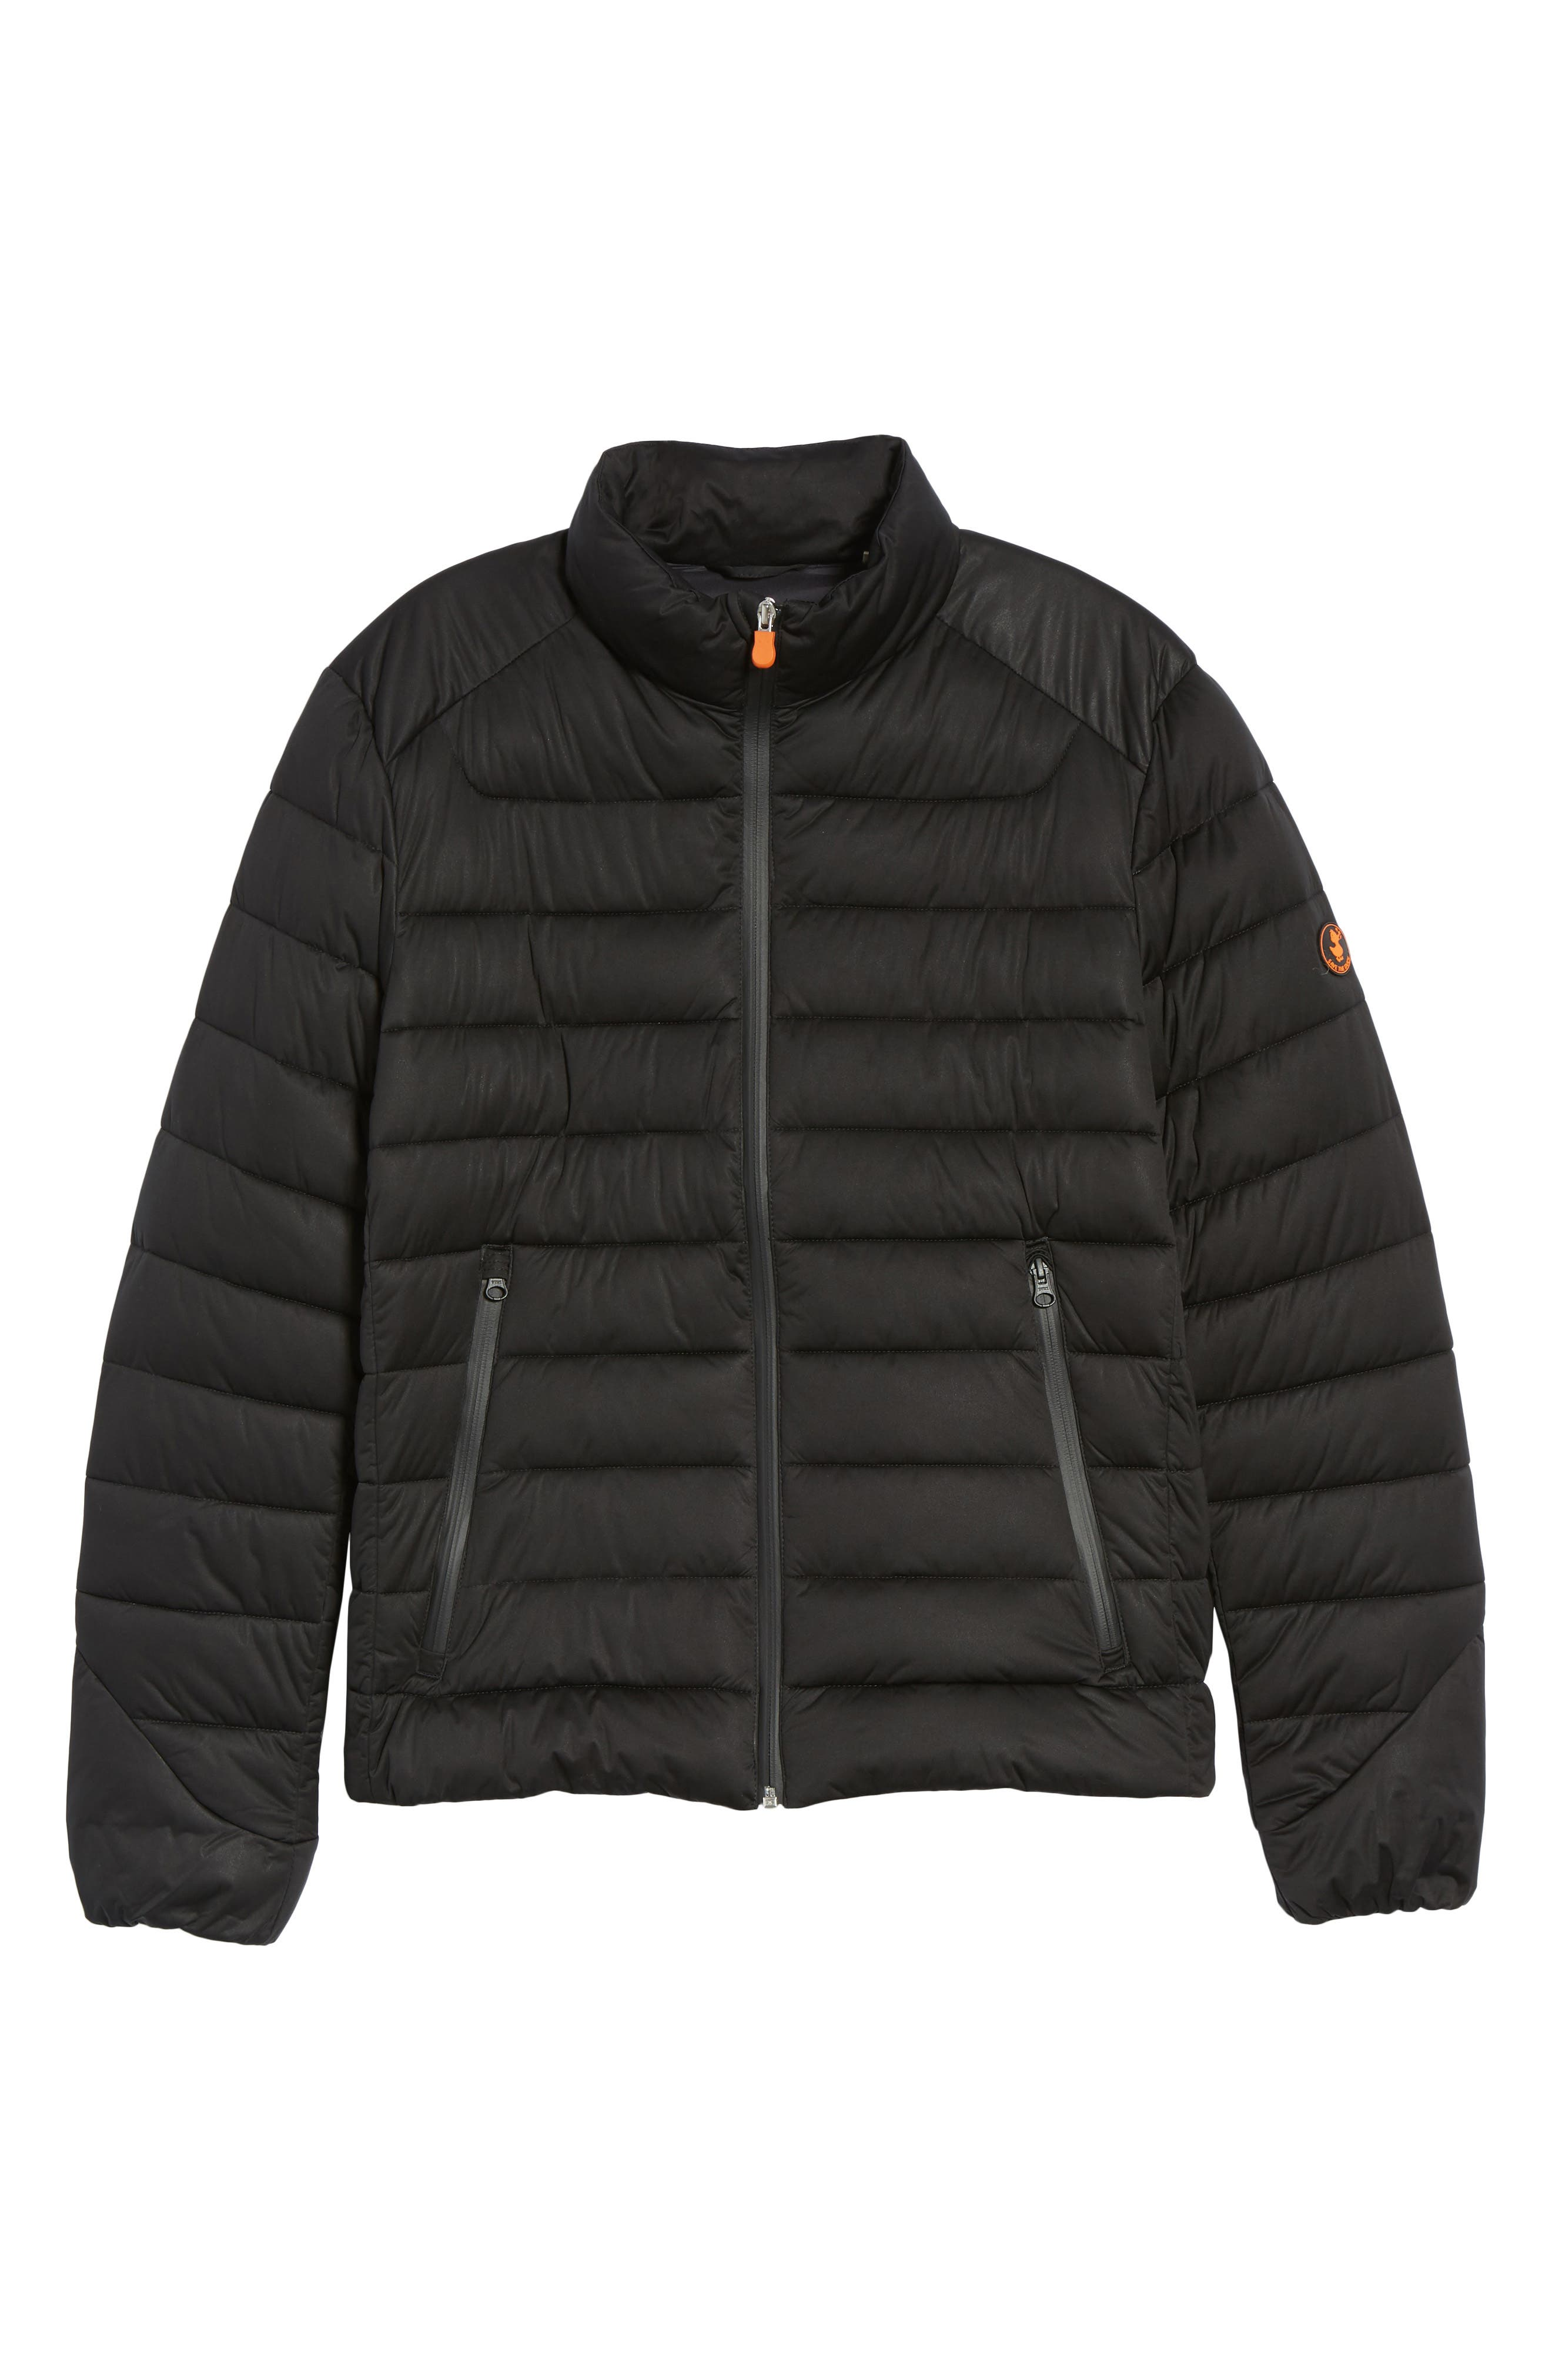 Water Resistant Puffer Jacket,                             Alternate thumbnail 6, color,                             Black